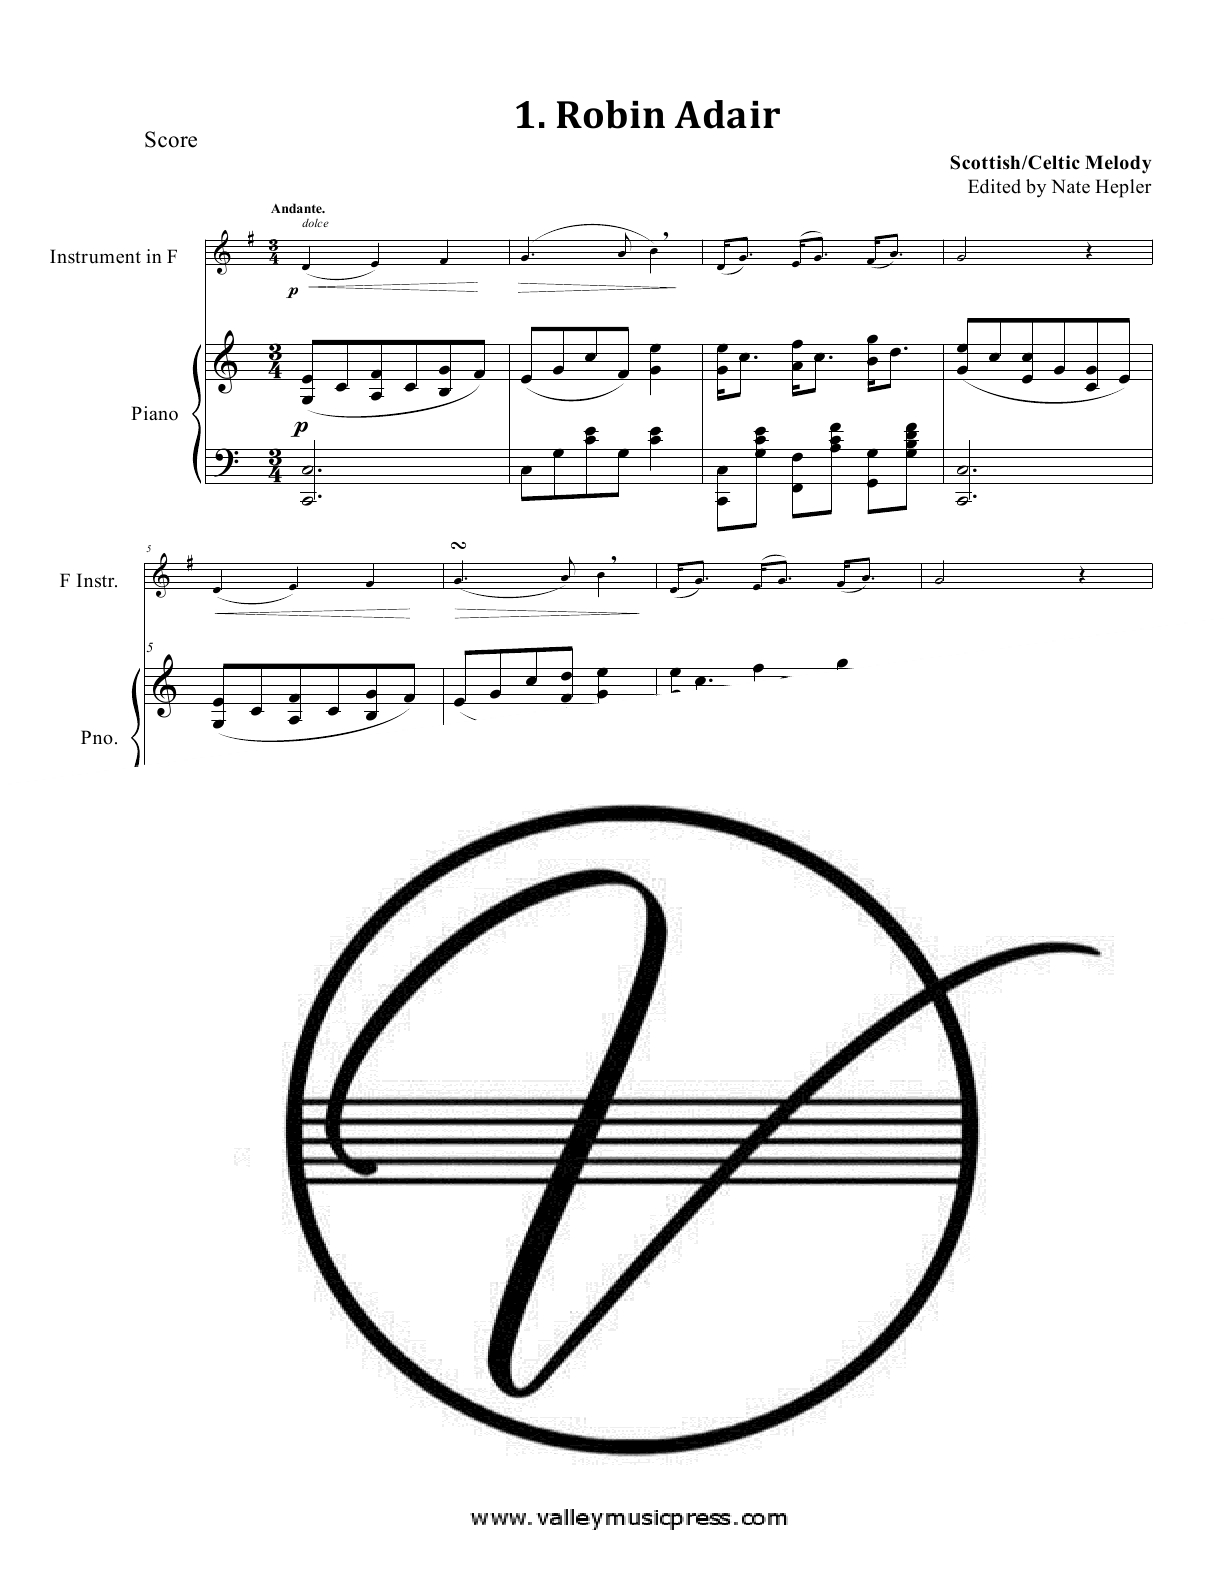 Arban Art of Phrasing Piano Accompaniment Vol. 3 No. 51-75 (Hrn) - Click Image to Close